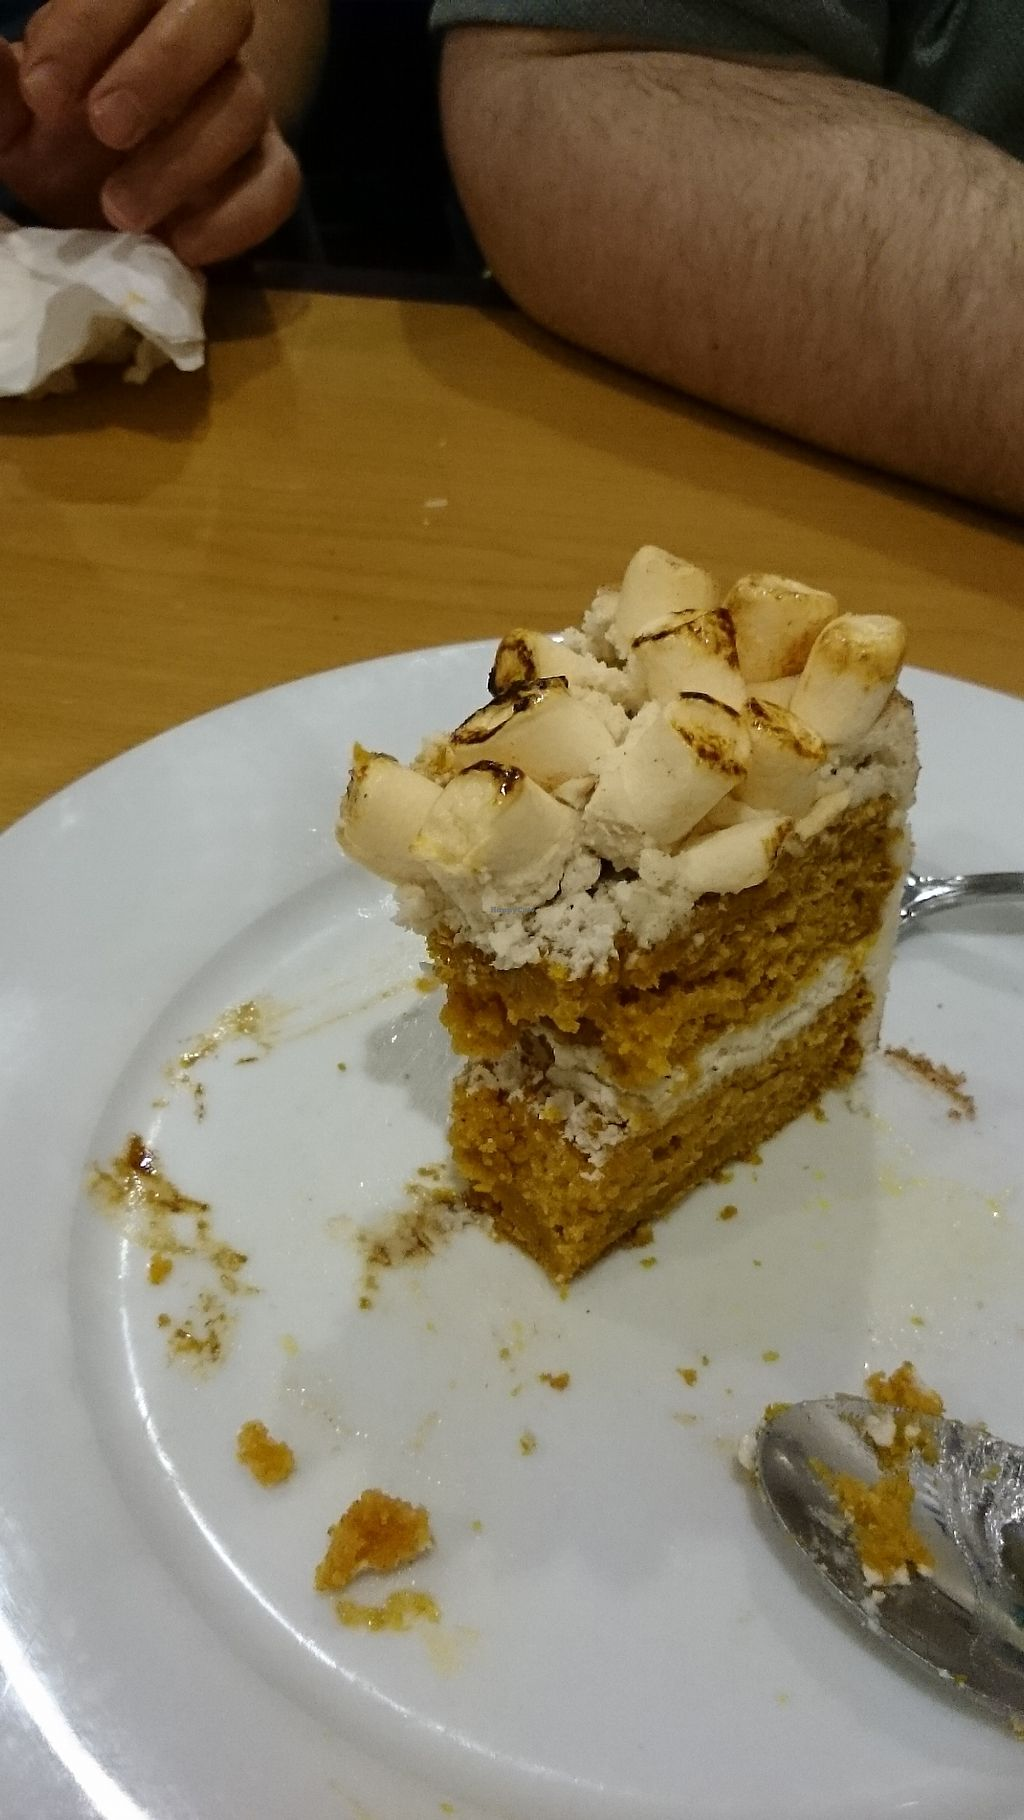 "Photo of Frankie's on Fairview  by <a href=""/members/profile/ZoraySpielvogel"">ZoraySpielvogel</a> <br/>Vegan Marshmallow pumpkin pie cake  <br/> December 5, 2017  - <a href='/contact/abuse/image/56280/332556'>Report</a>"